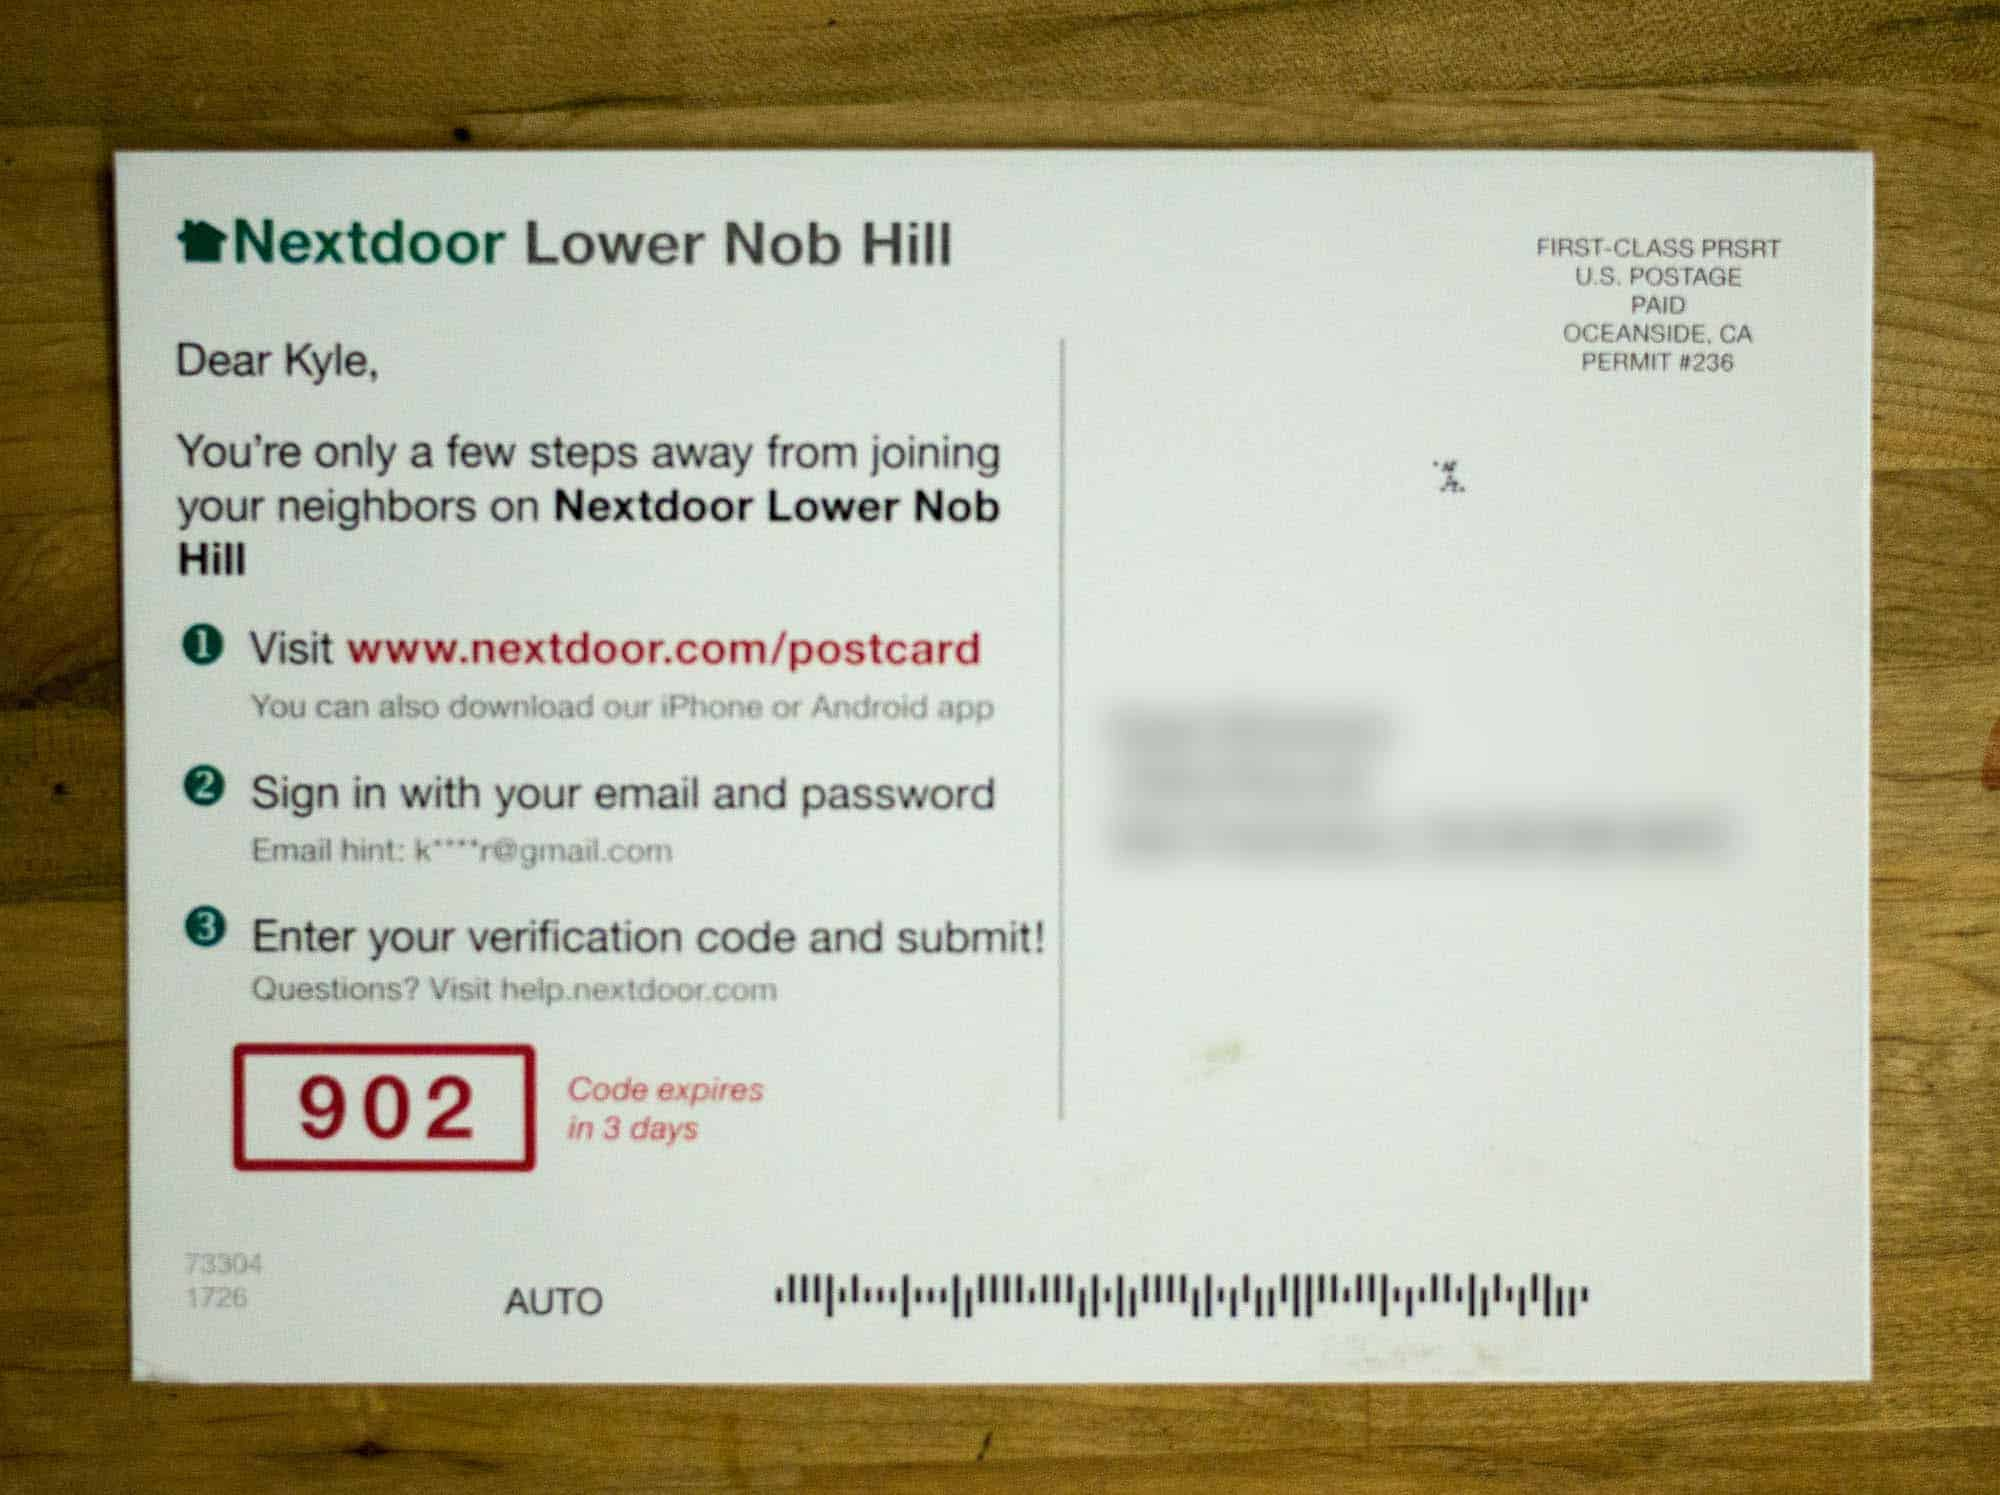 Image of the back of a Nextdoor postcard.